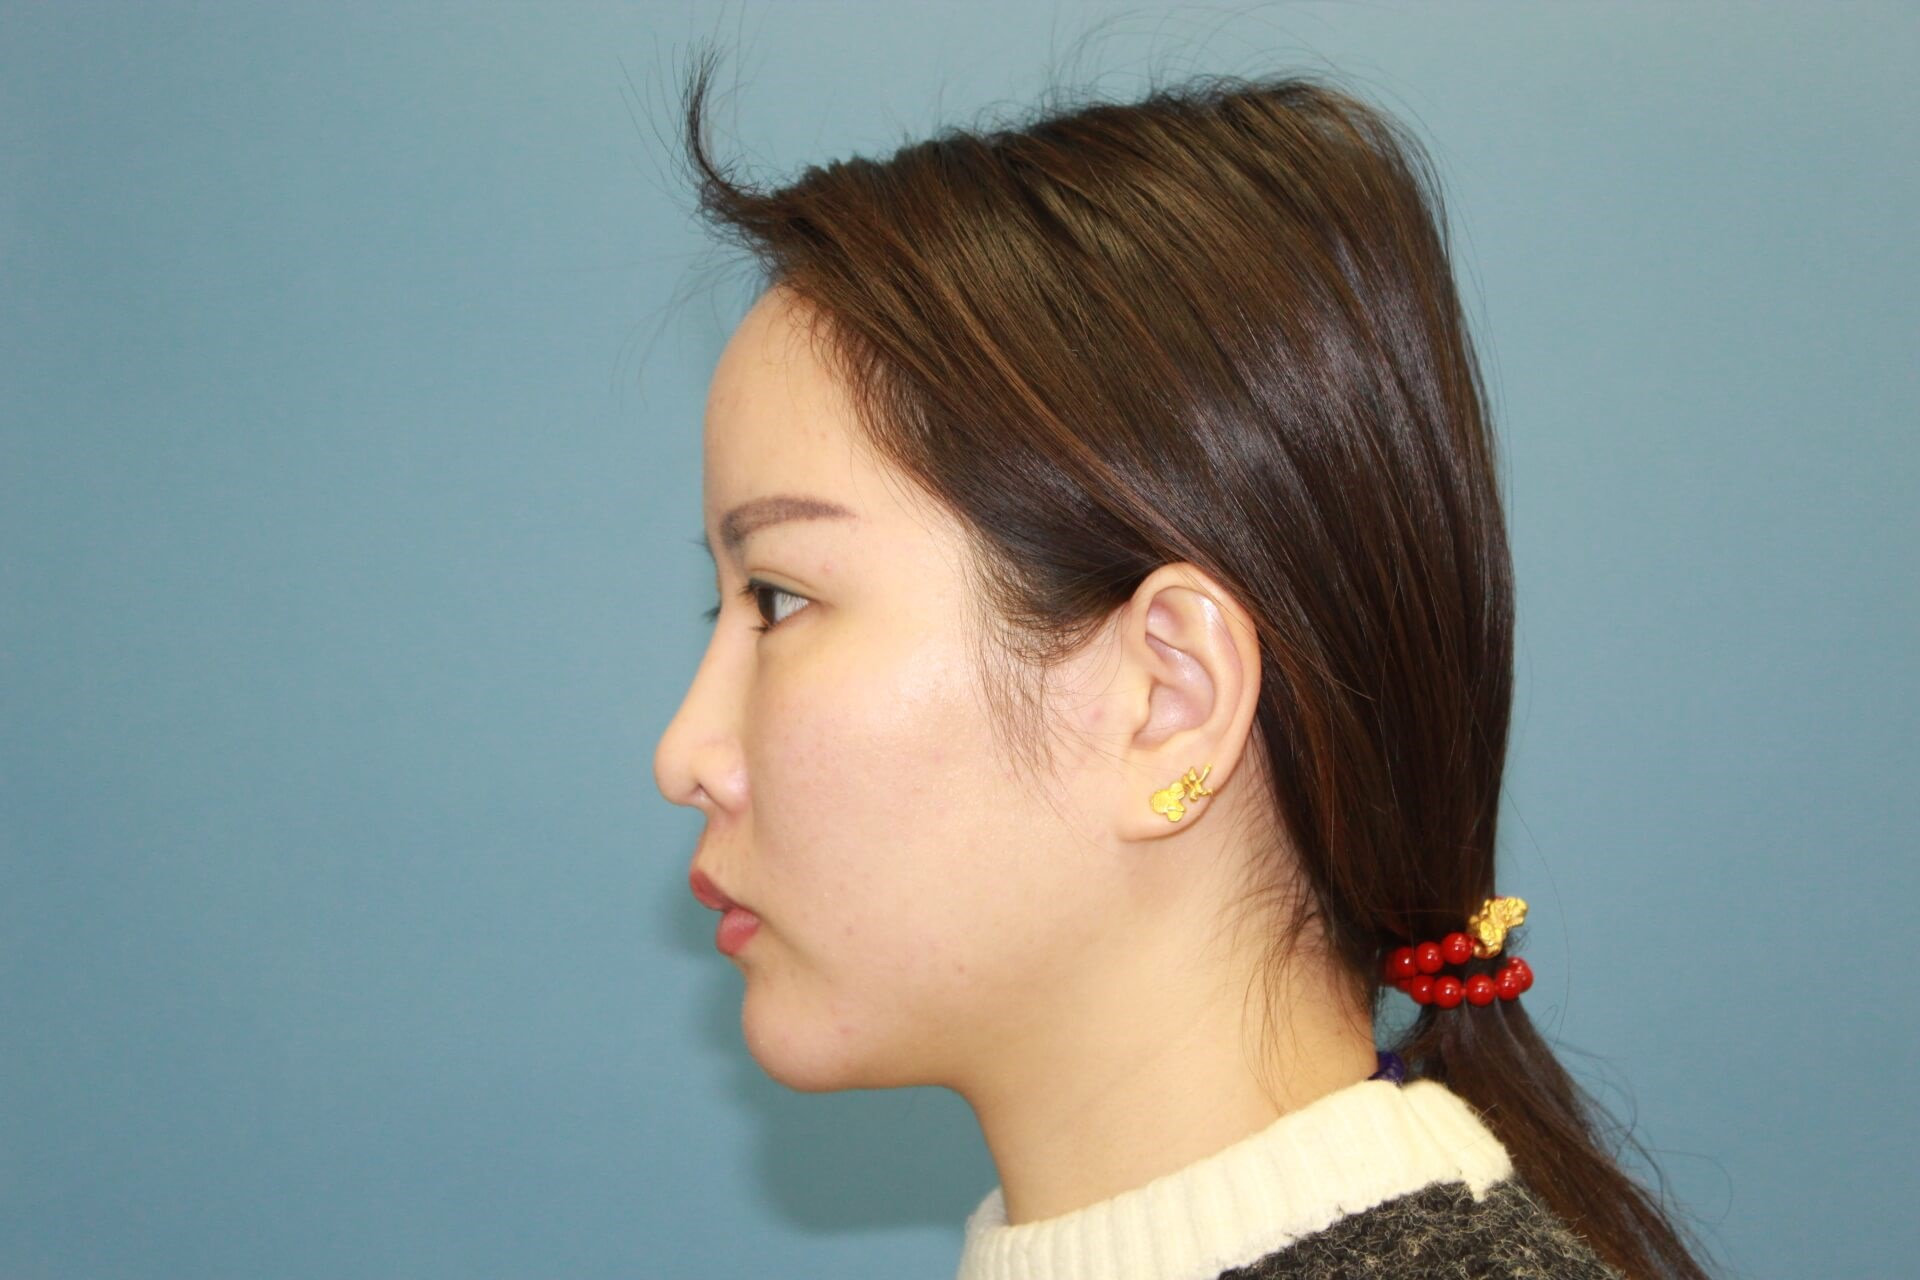 Asian Revision Rhinoplasty Before